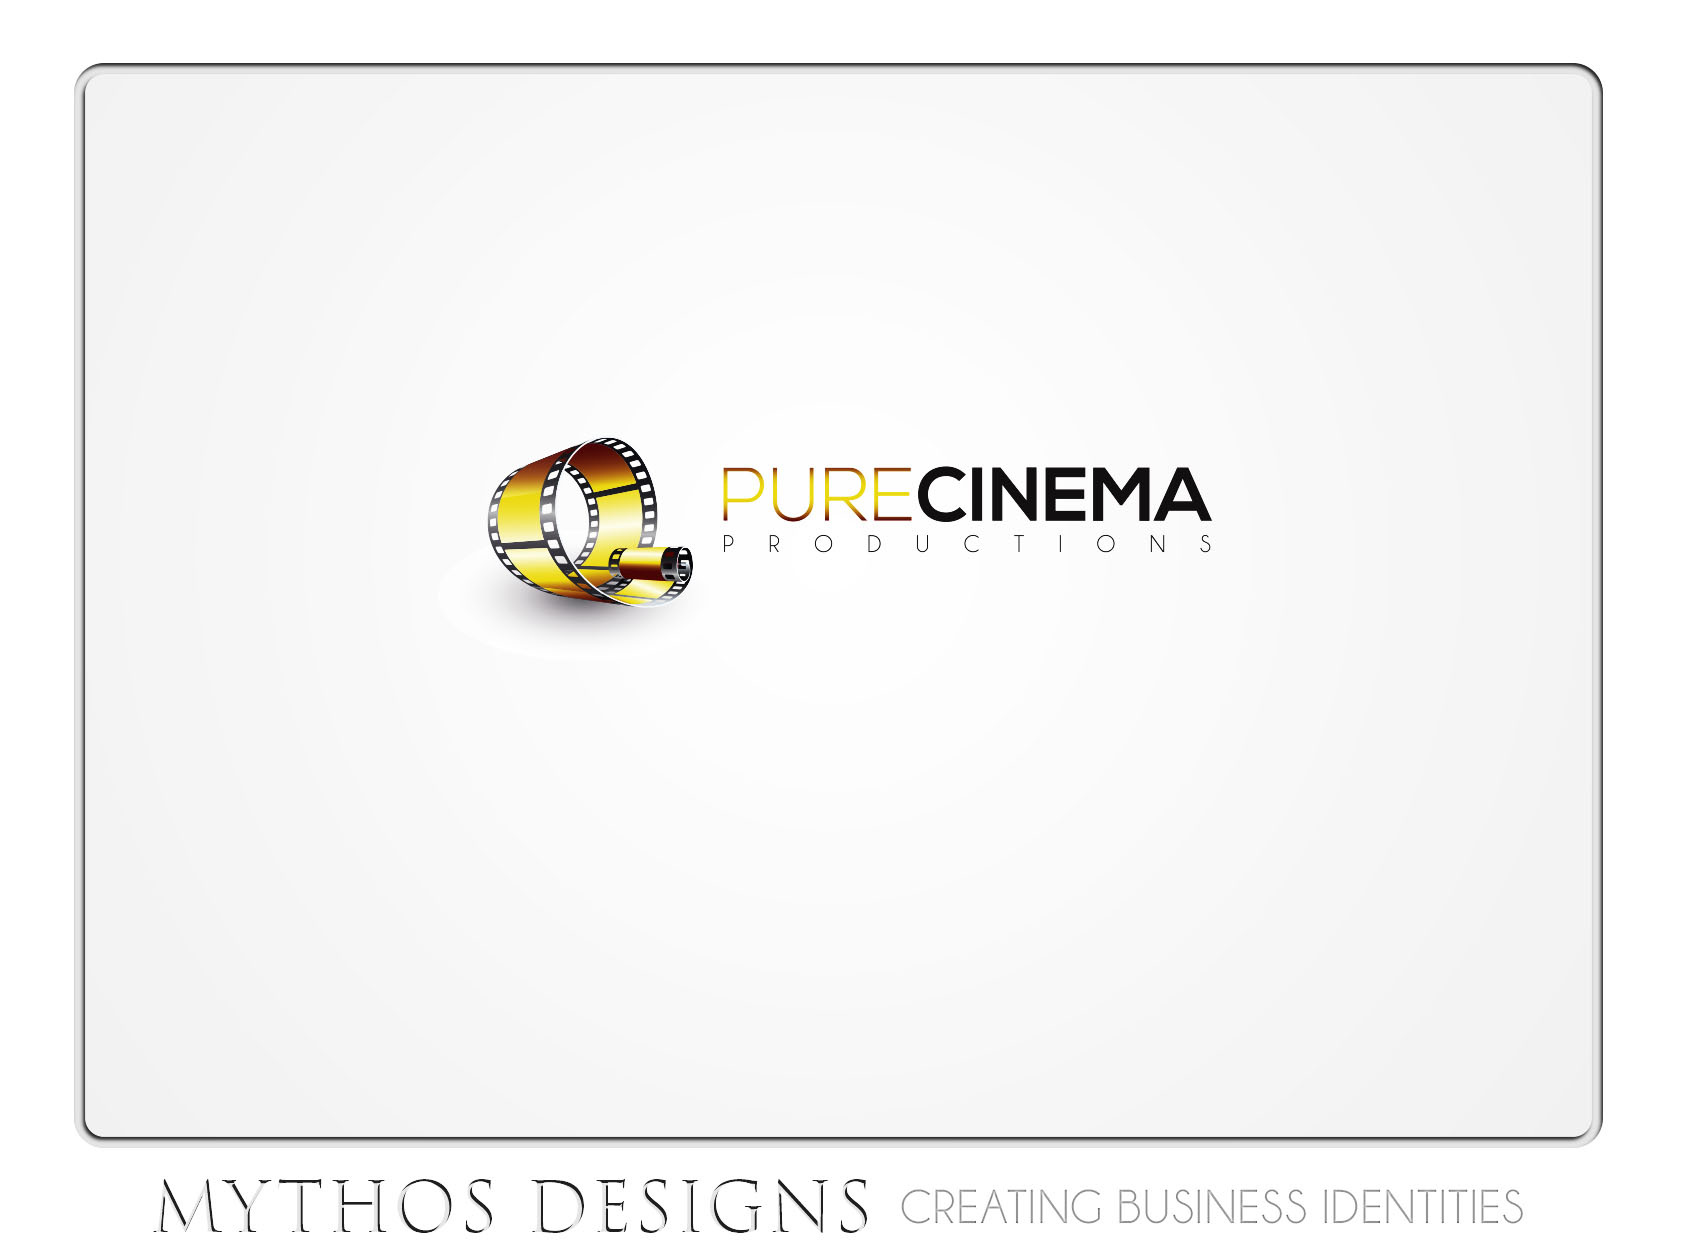 Logo Design by Mythos Designs - Entry No. 93 in the Logo Design Contest Imaginative Logo Design for Pure Cinema.